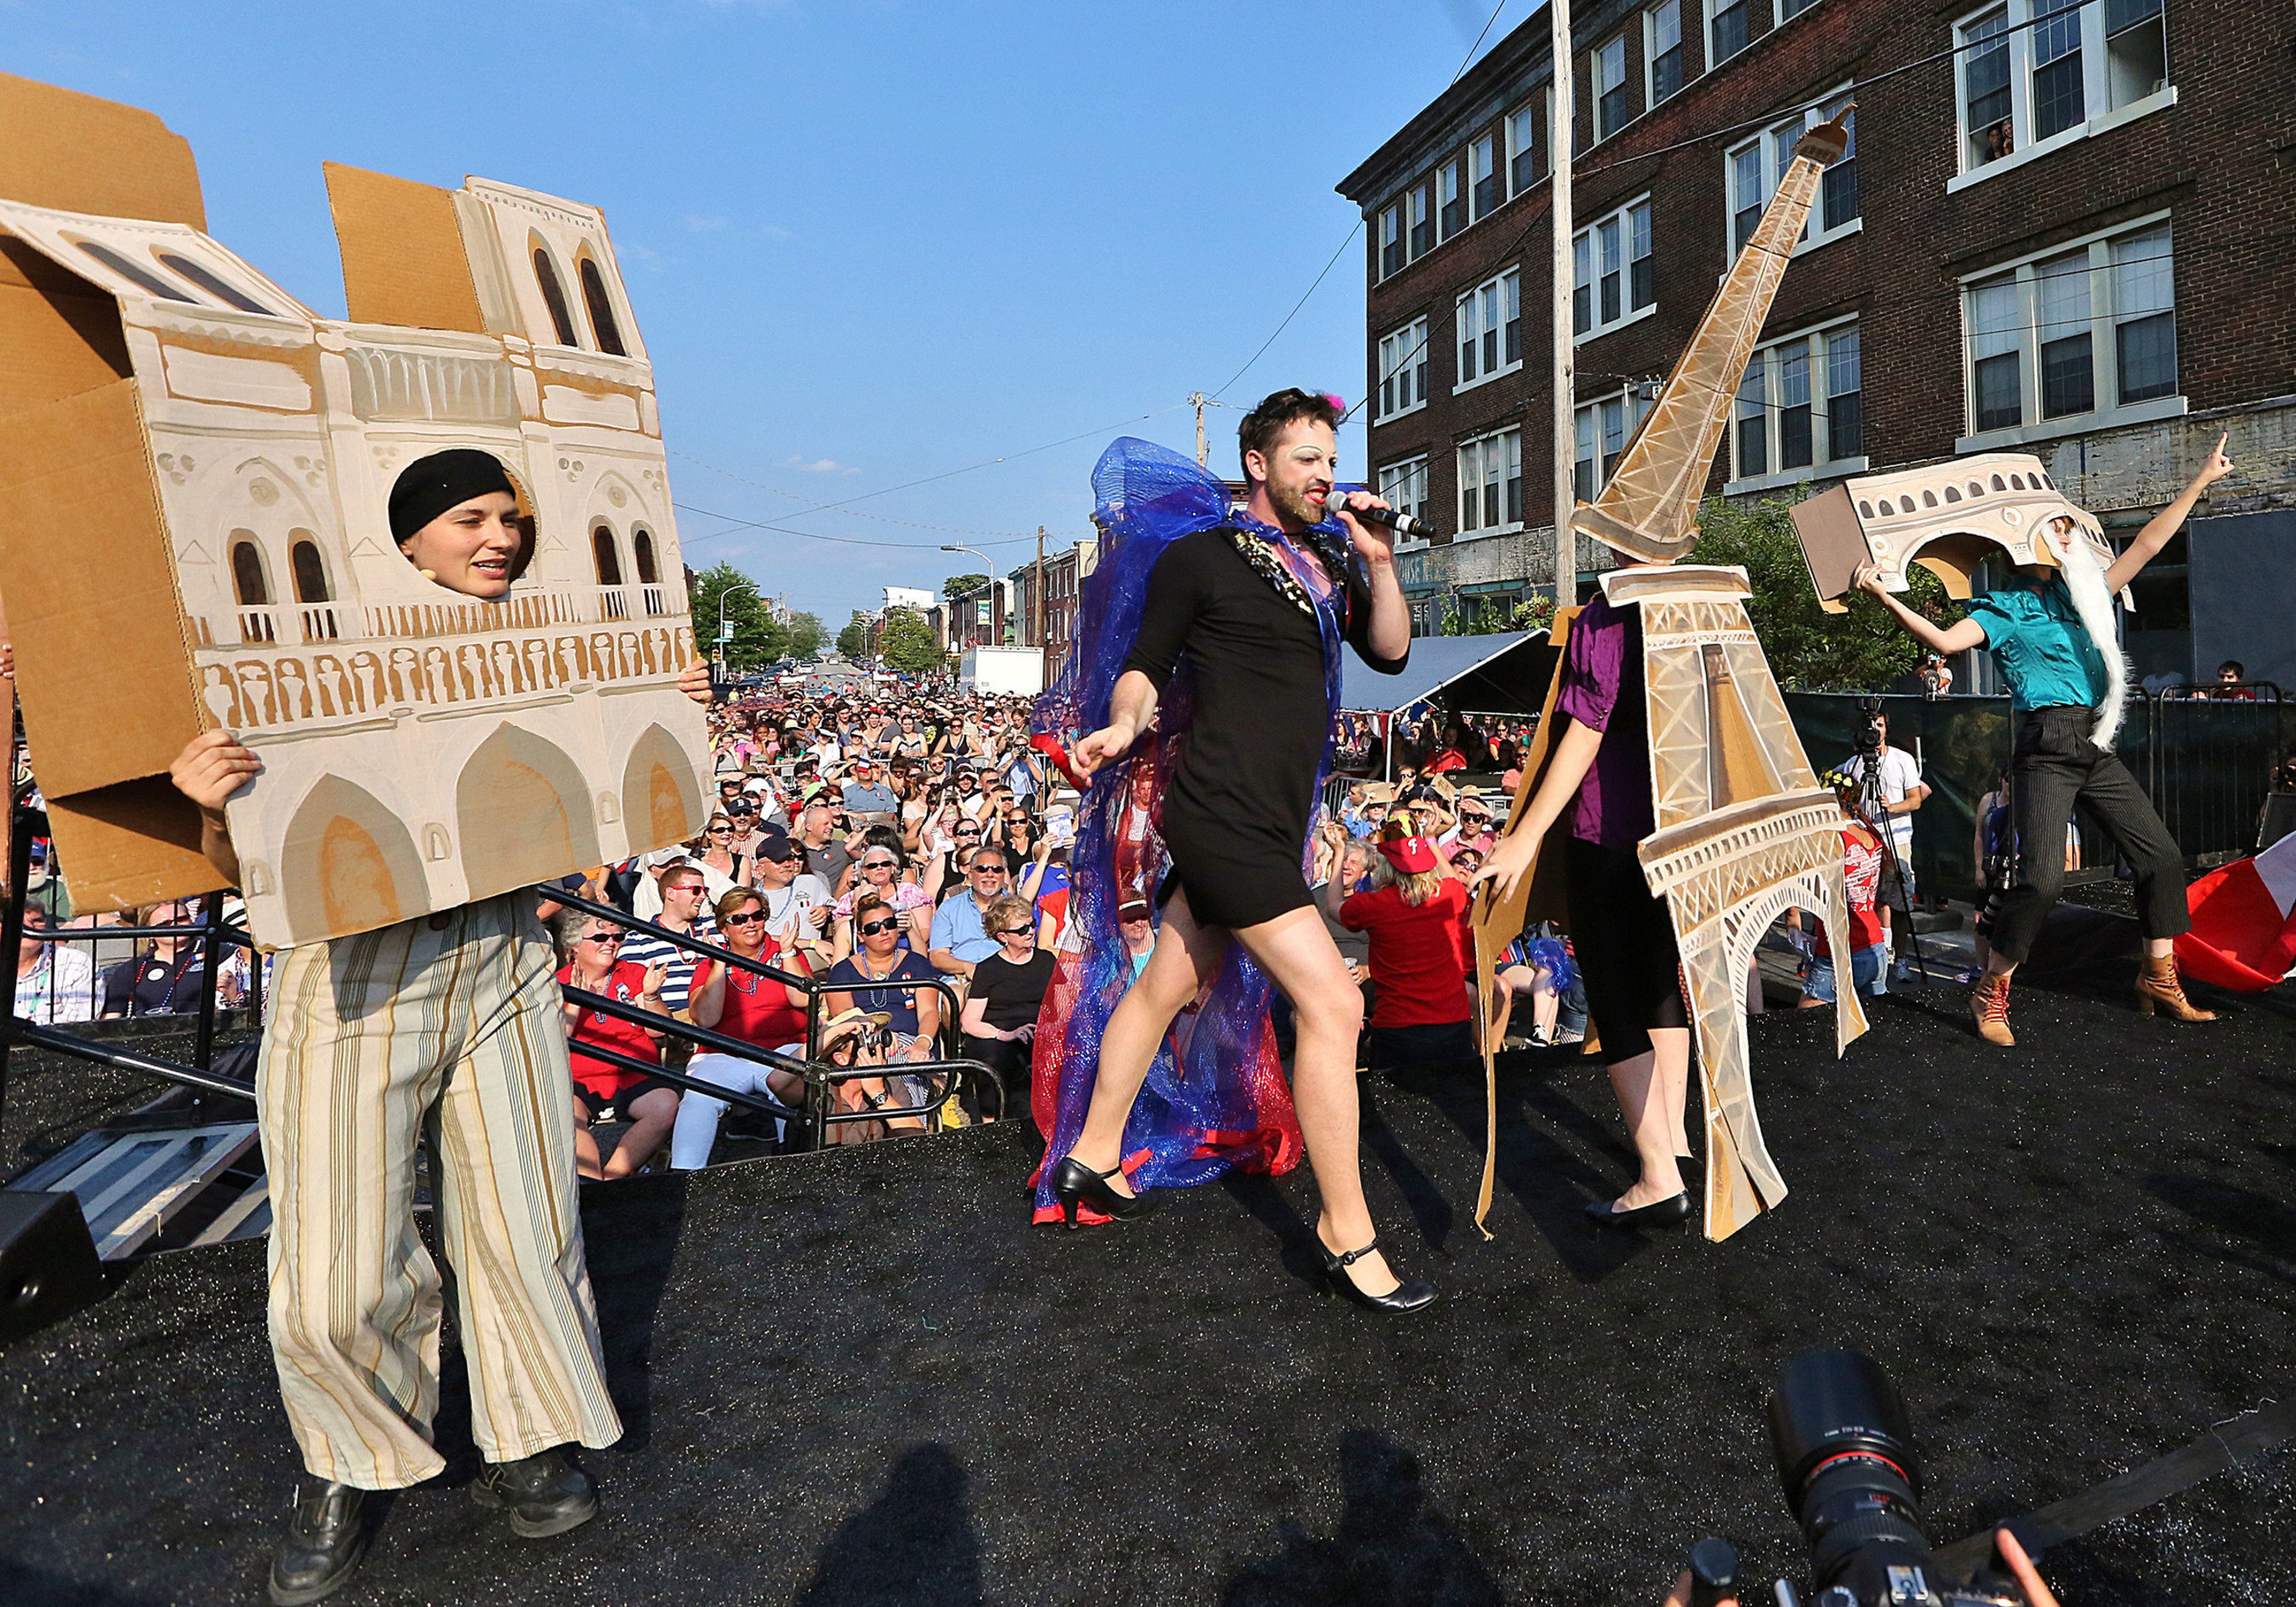 Eastern State Penitentiary's Bastille Day celebration in Philadelphia features free theatrical performance by The Bearded Ladies as thousands of Tastykakes fly from the prison's towers. Photo: Daryl Moran